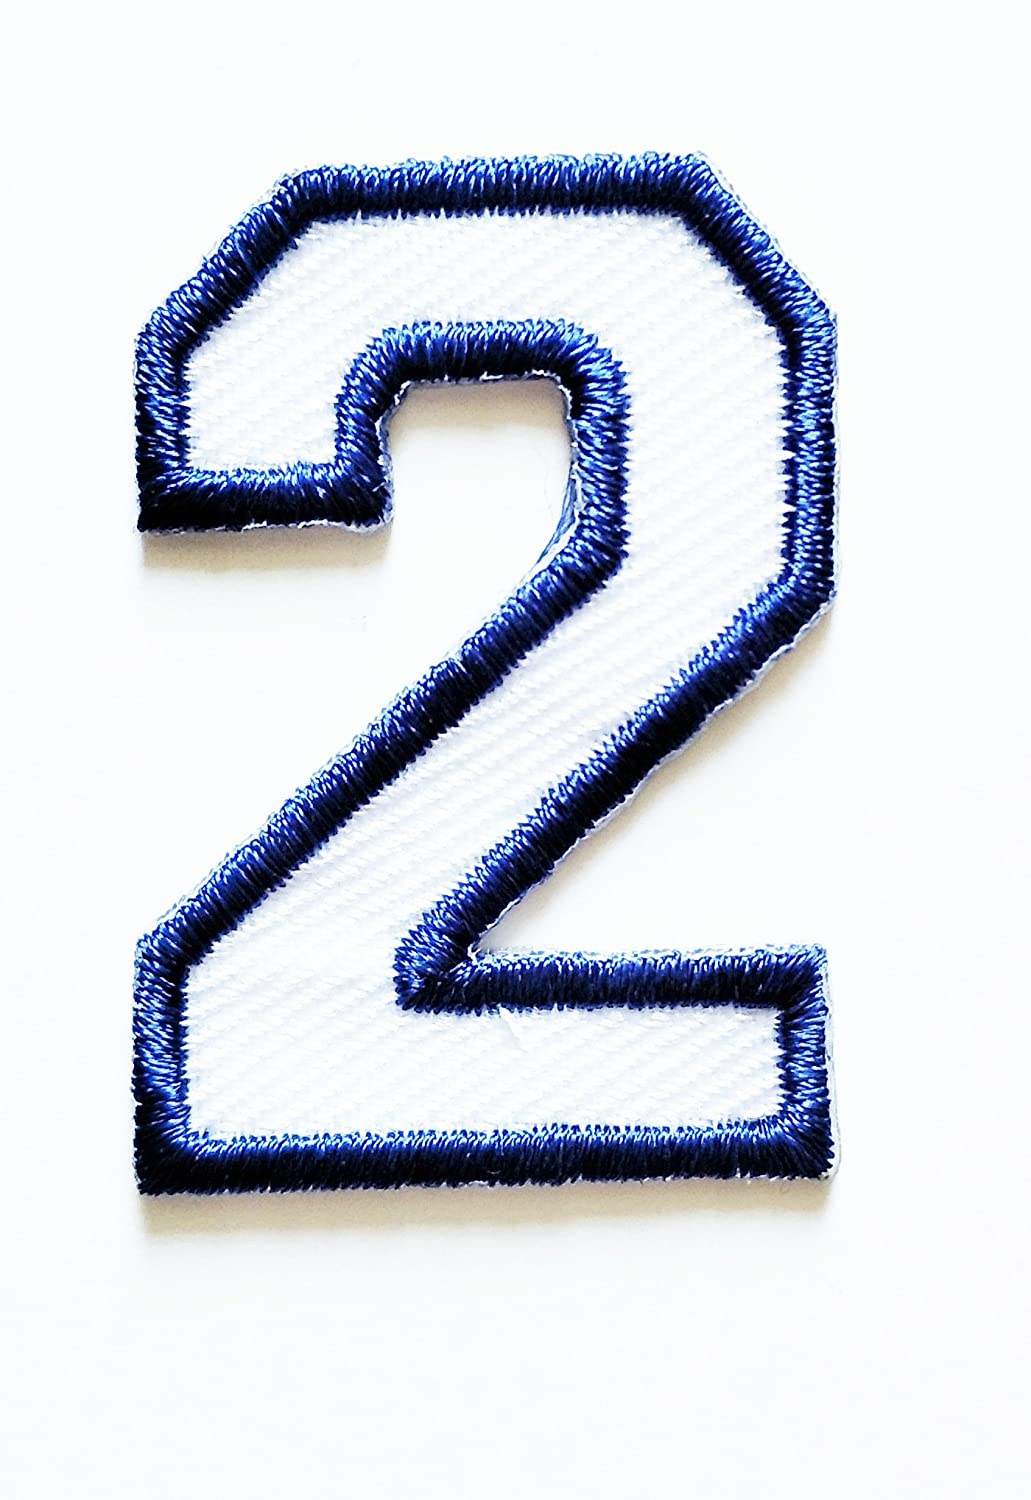 HHO White-Blue Number 2 No 2 math counting no 2 school Patch Embroidered DIY Patches, Cute Applique Sew Iron on Kids Craft Patch for Bags Jackets Jeans Clothes